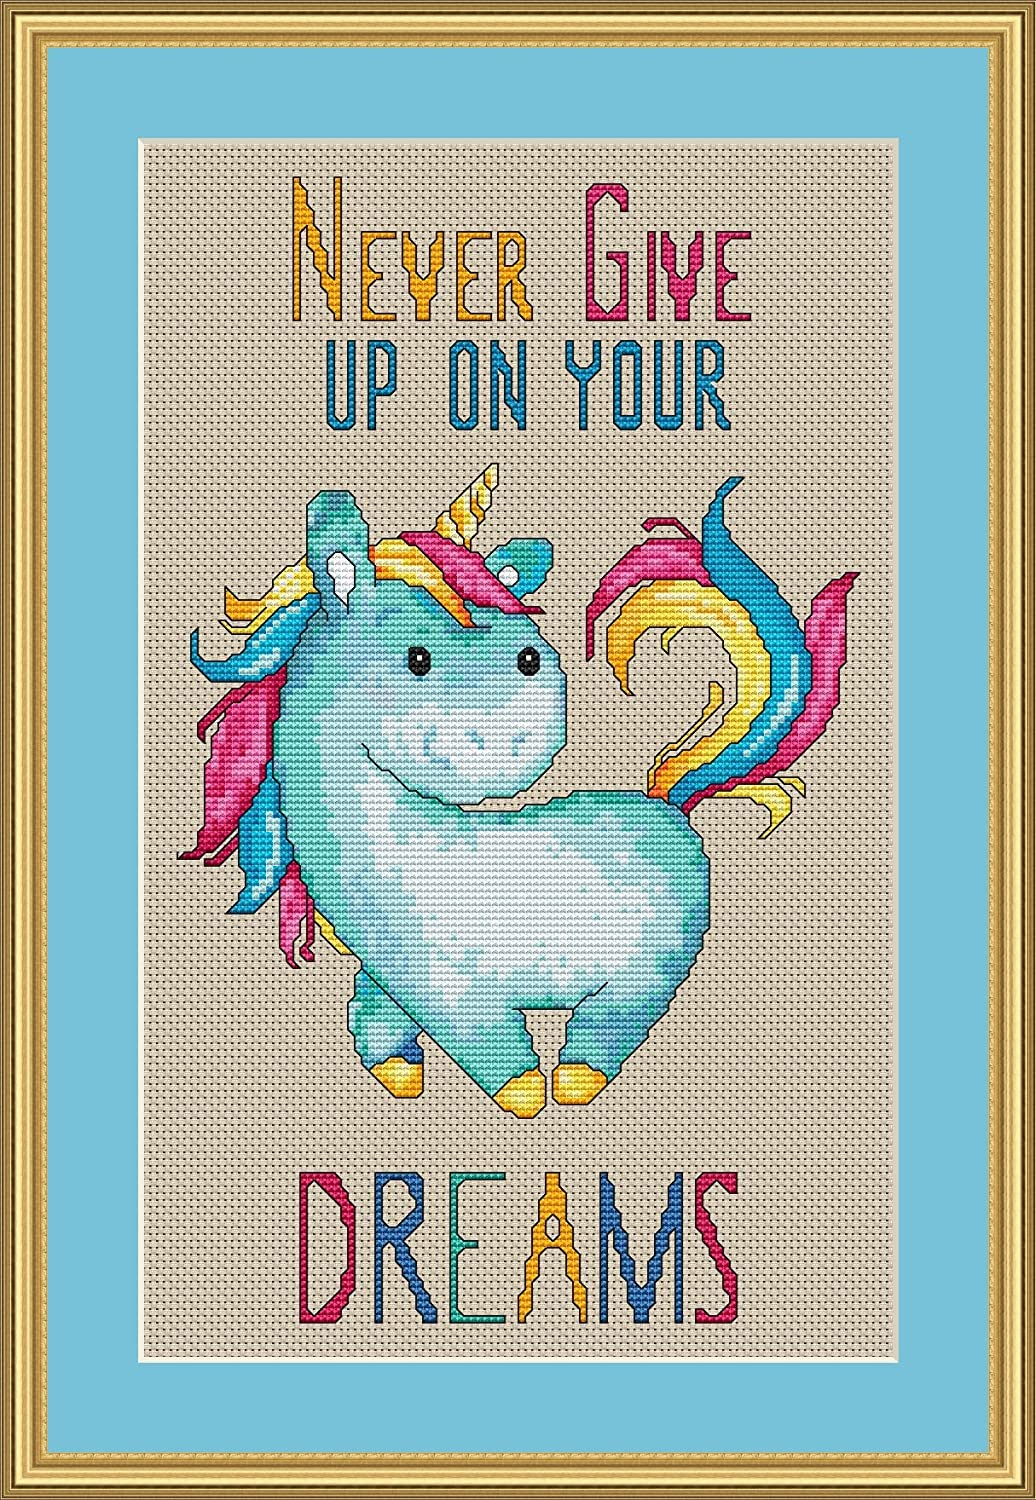 Stitching Tips//Fabric Planning Guide included. Never Give Up on Your Dreams Unicorn Cross Stitch Pattern Not a Kit